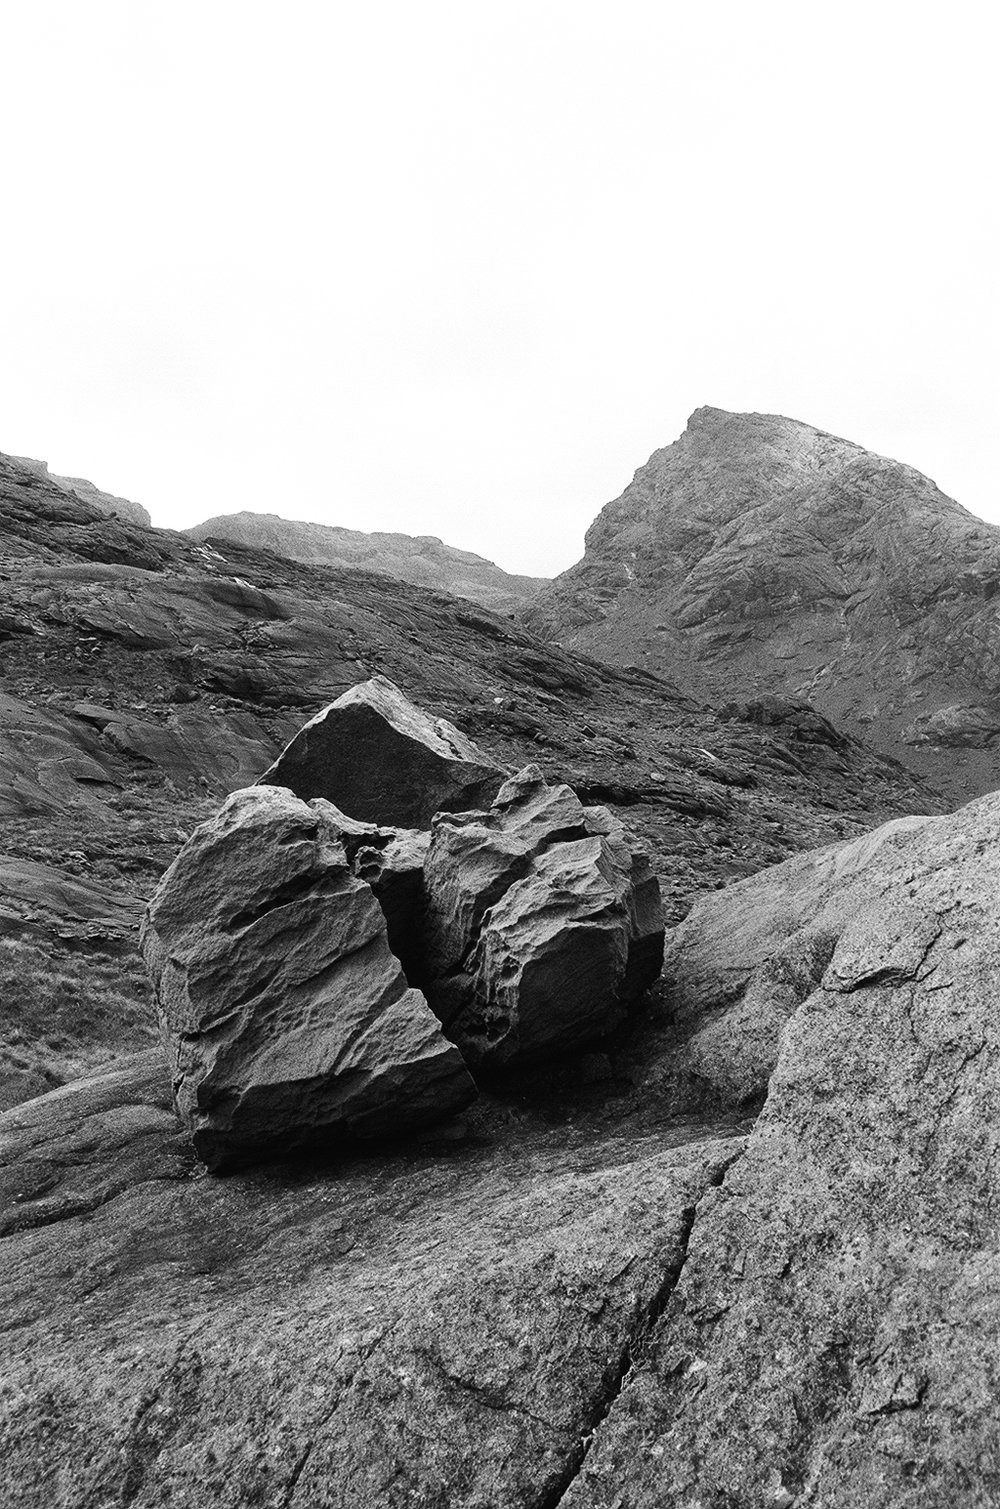 Kylie White,  Glacial Erratic , Loch Coruisk, 2017.  Image Courtesy of the Artist